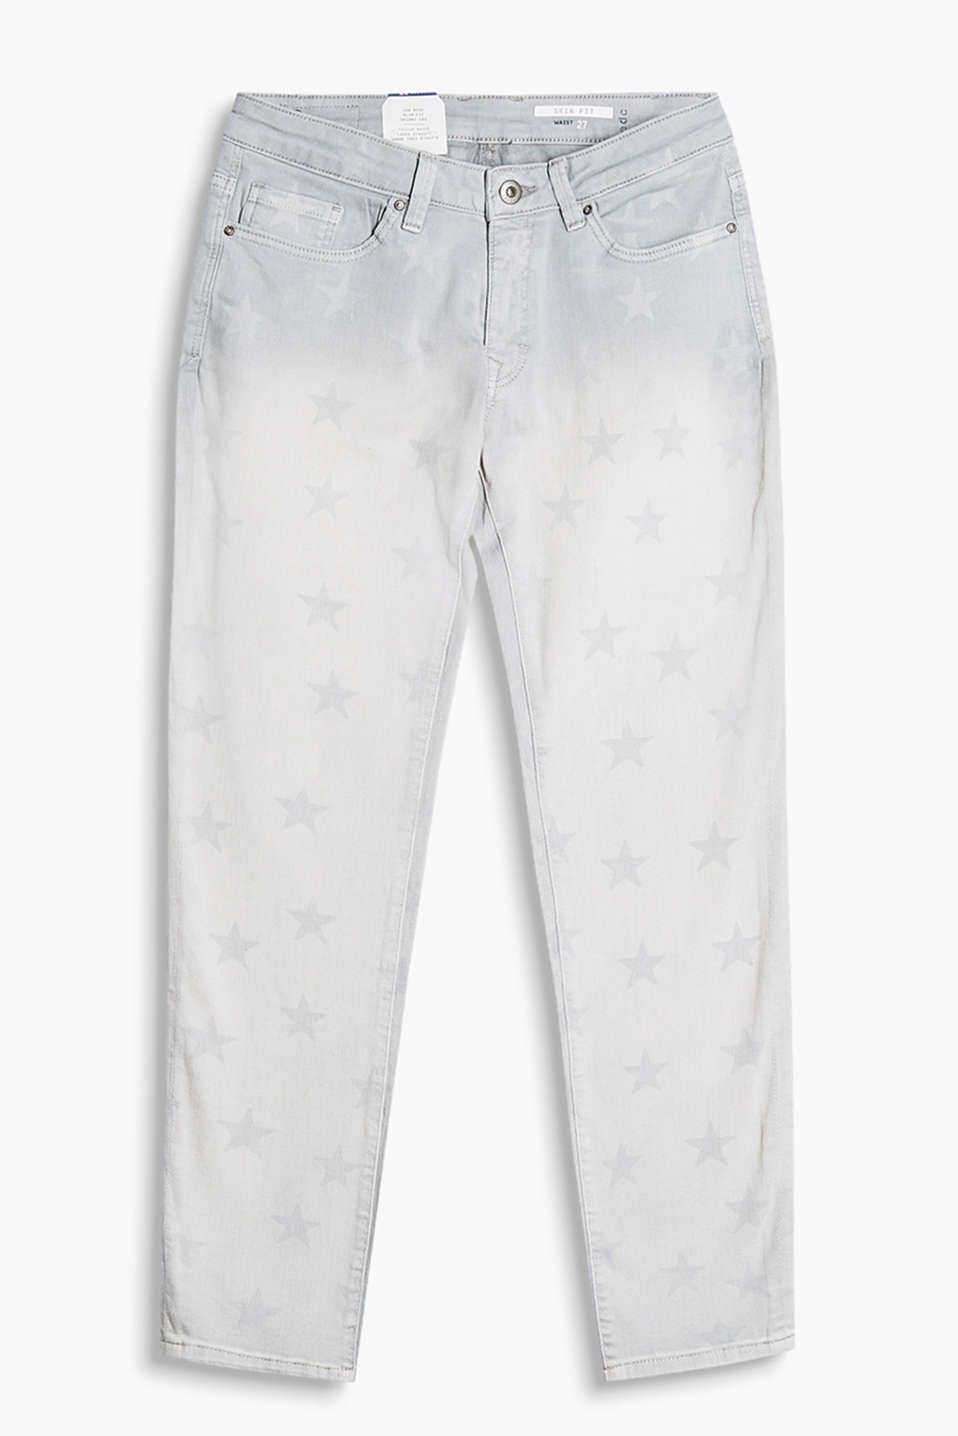 Skinny jeans with a star print and light washed effects made of cotton denim with added stretch for comfort